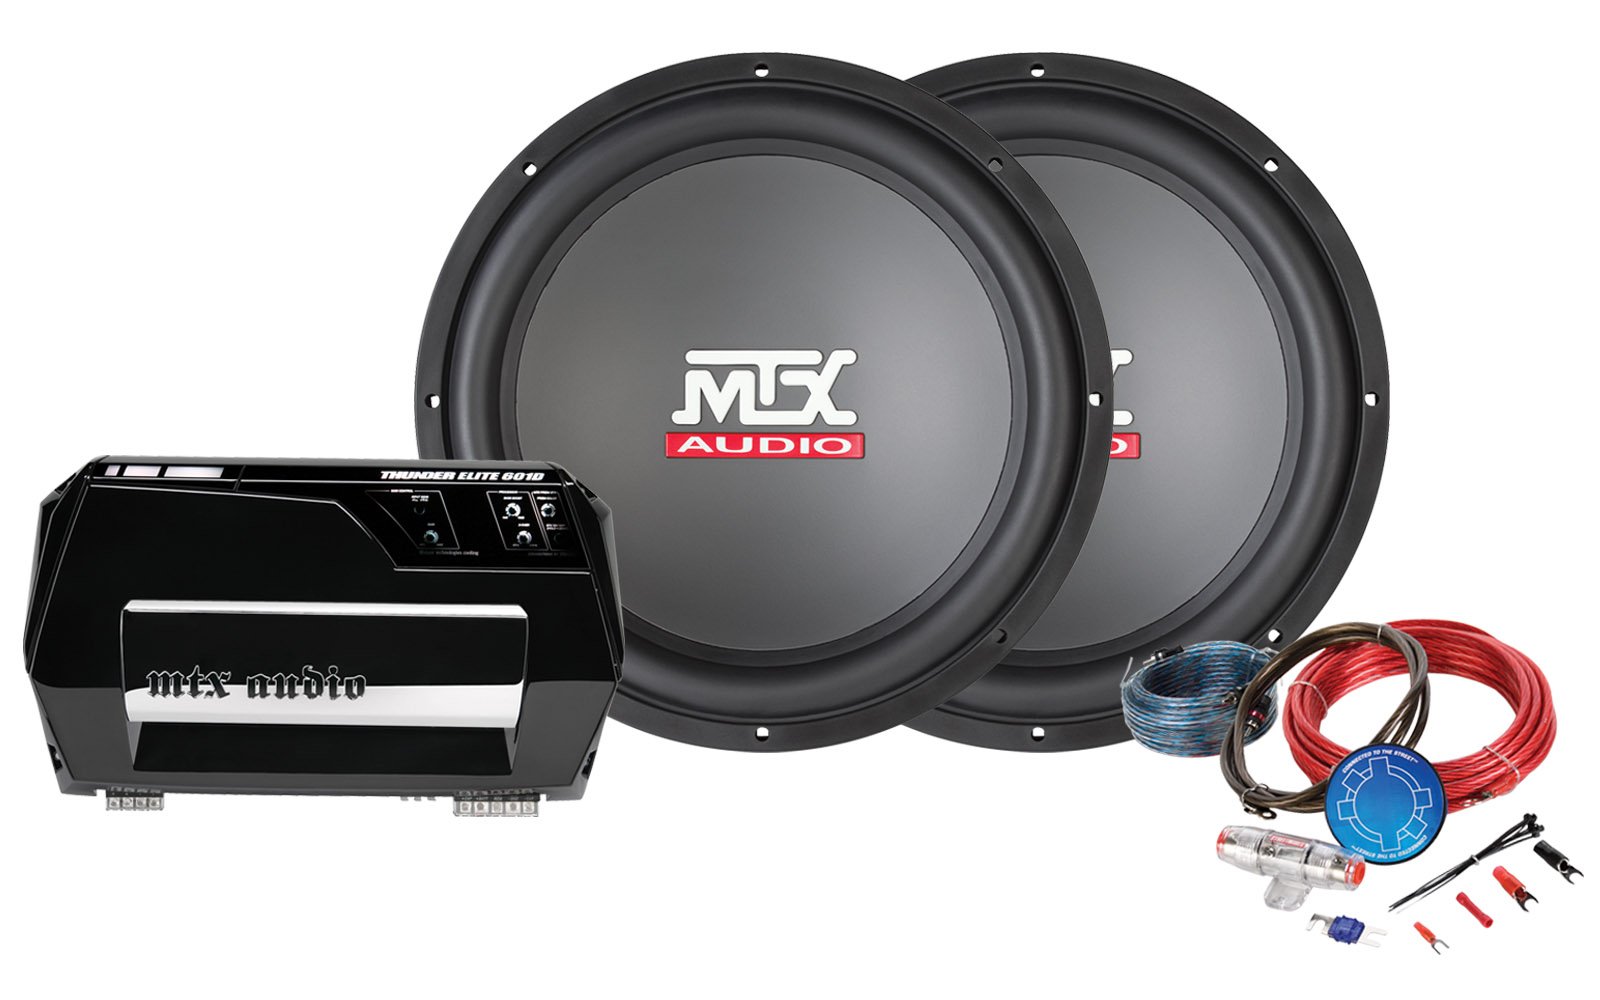 Bass Package Thunder 600w Amplifier 15 Subwoofer Mtx Audio High Performance Car Wiring